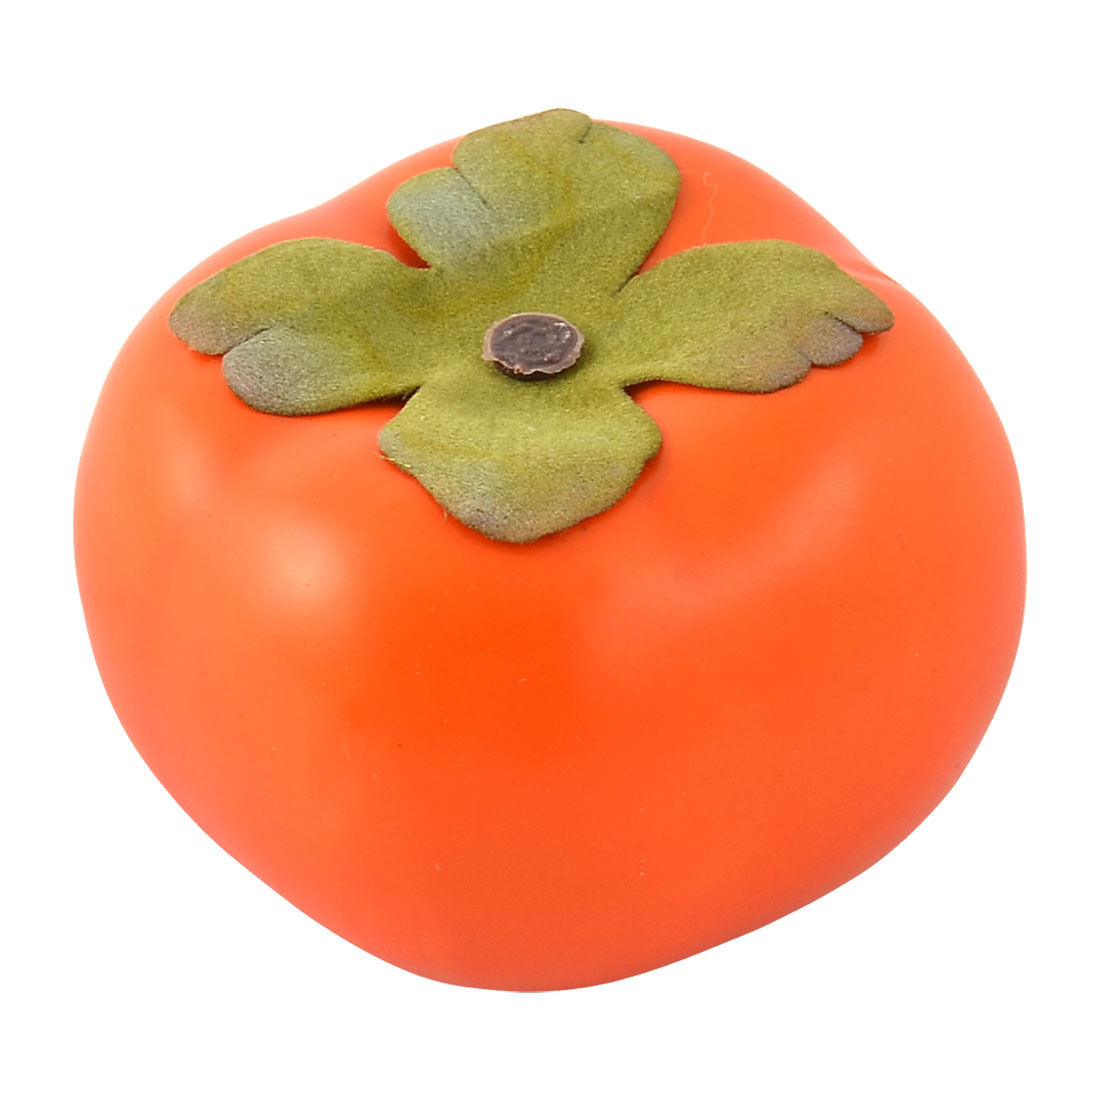 Artificial Fruit Foam Lifelike Decor Handmade Simulation Persimmon Orangered